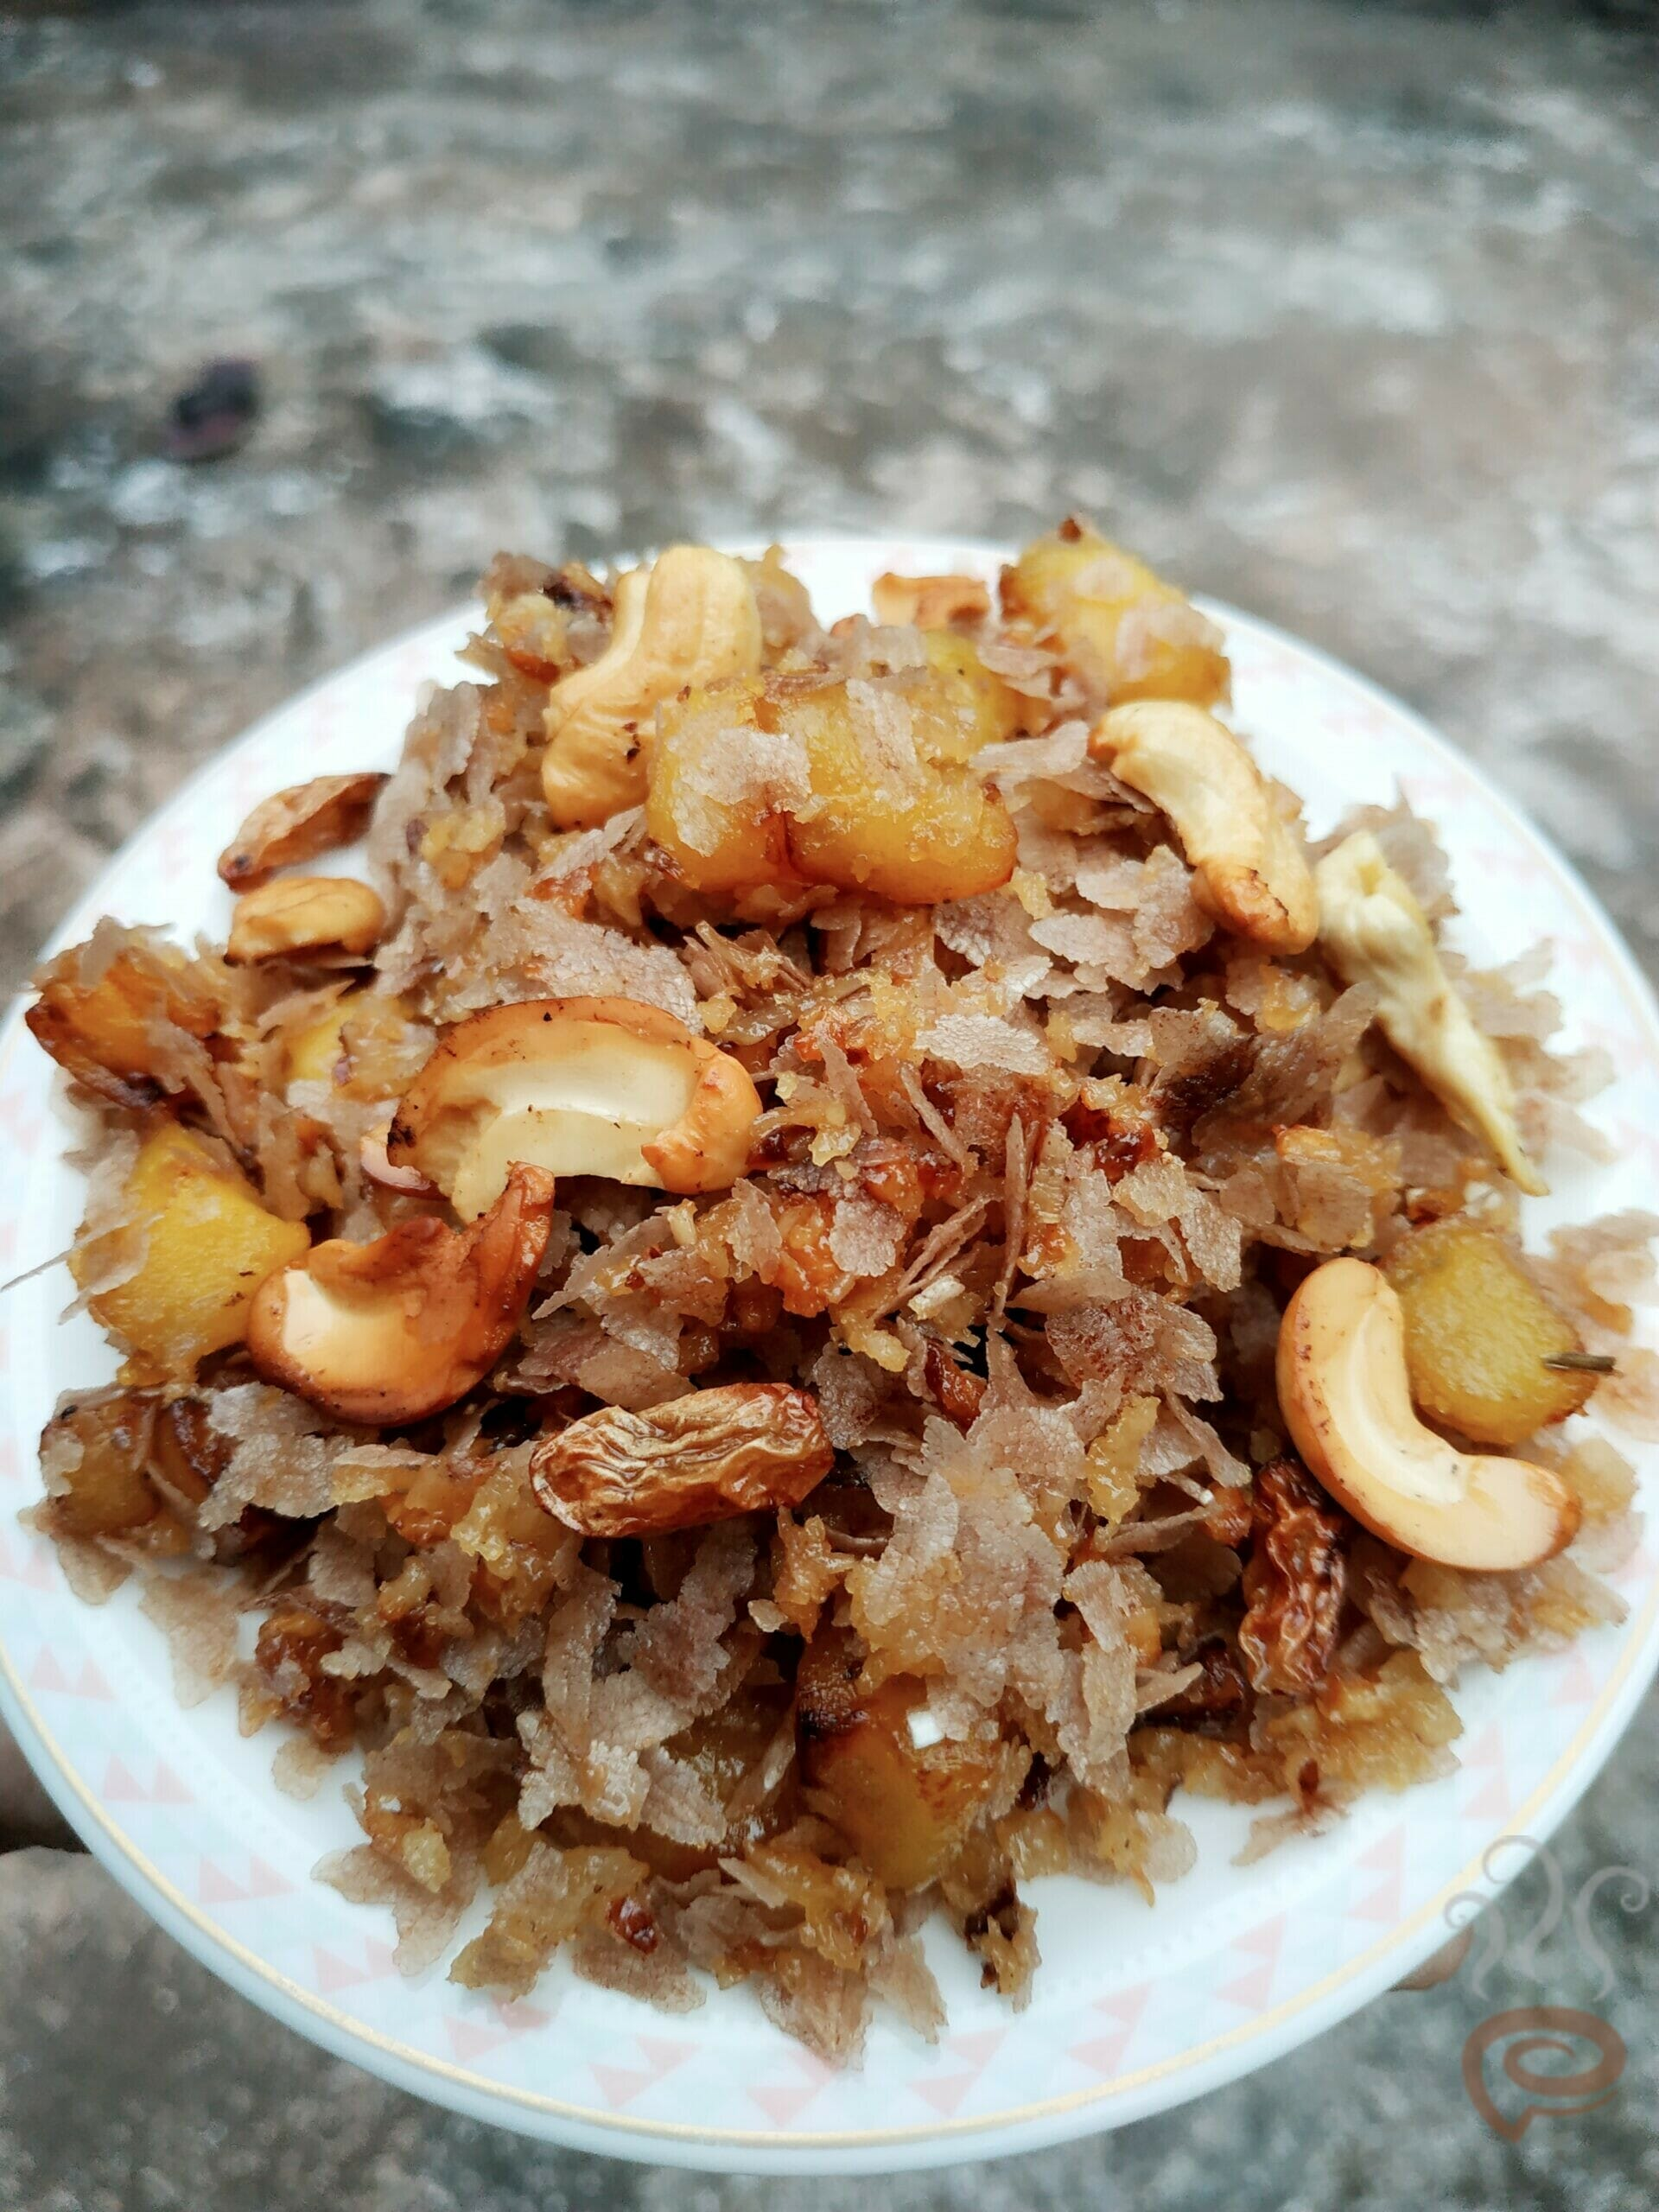 Aval Ethapazham Varattiyathu | Beaten Brown Rice Flakes And Ripe Plantains Cooked With Jaggery And Coconut – pachakam.com